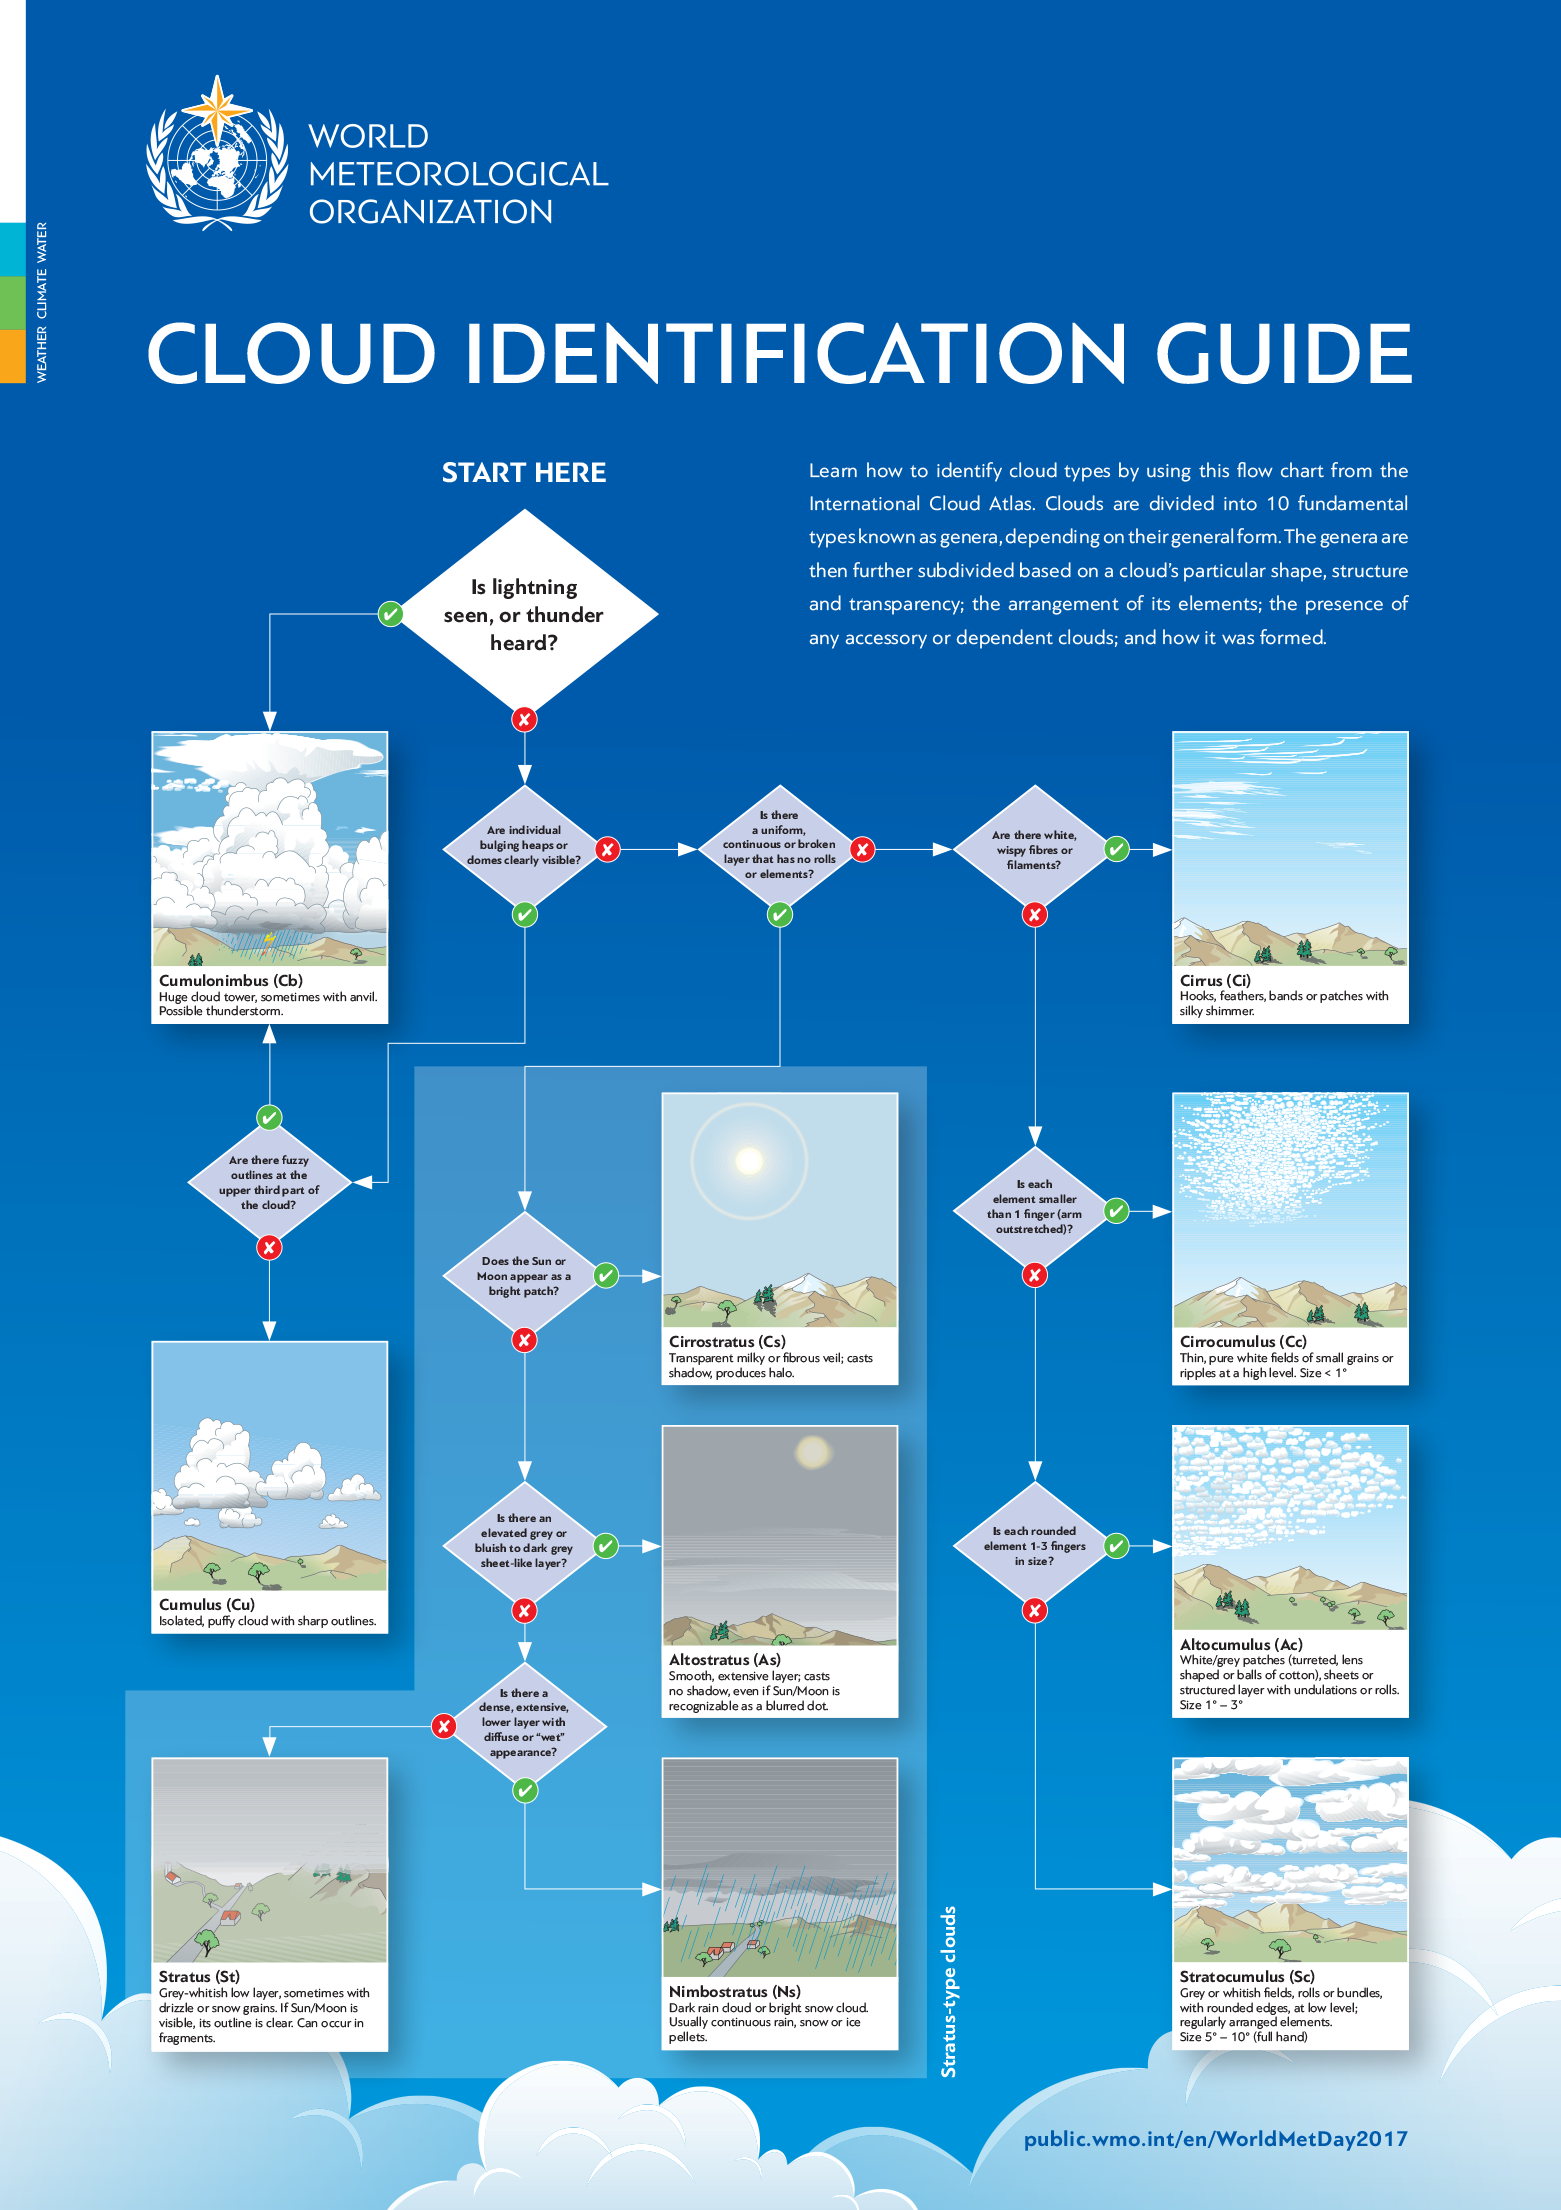 How To Identify 10 Fundamental Cloud Types Infographic